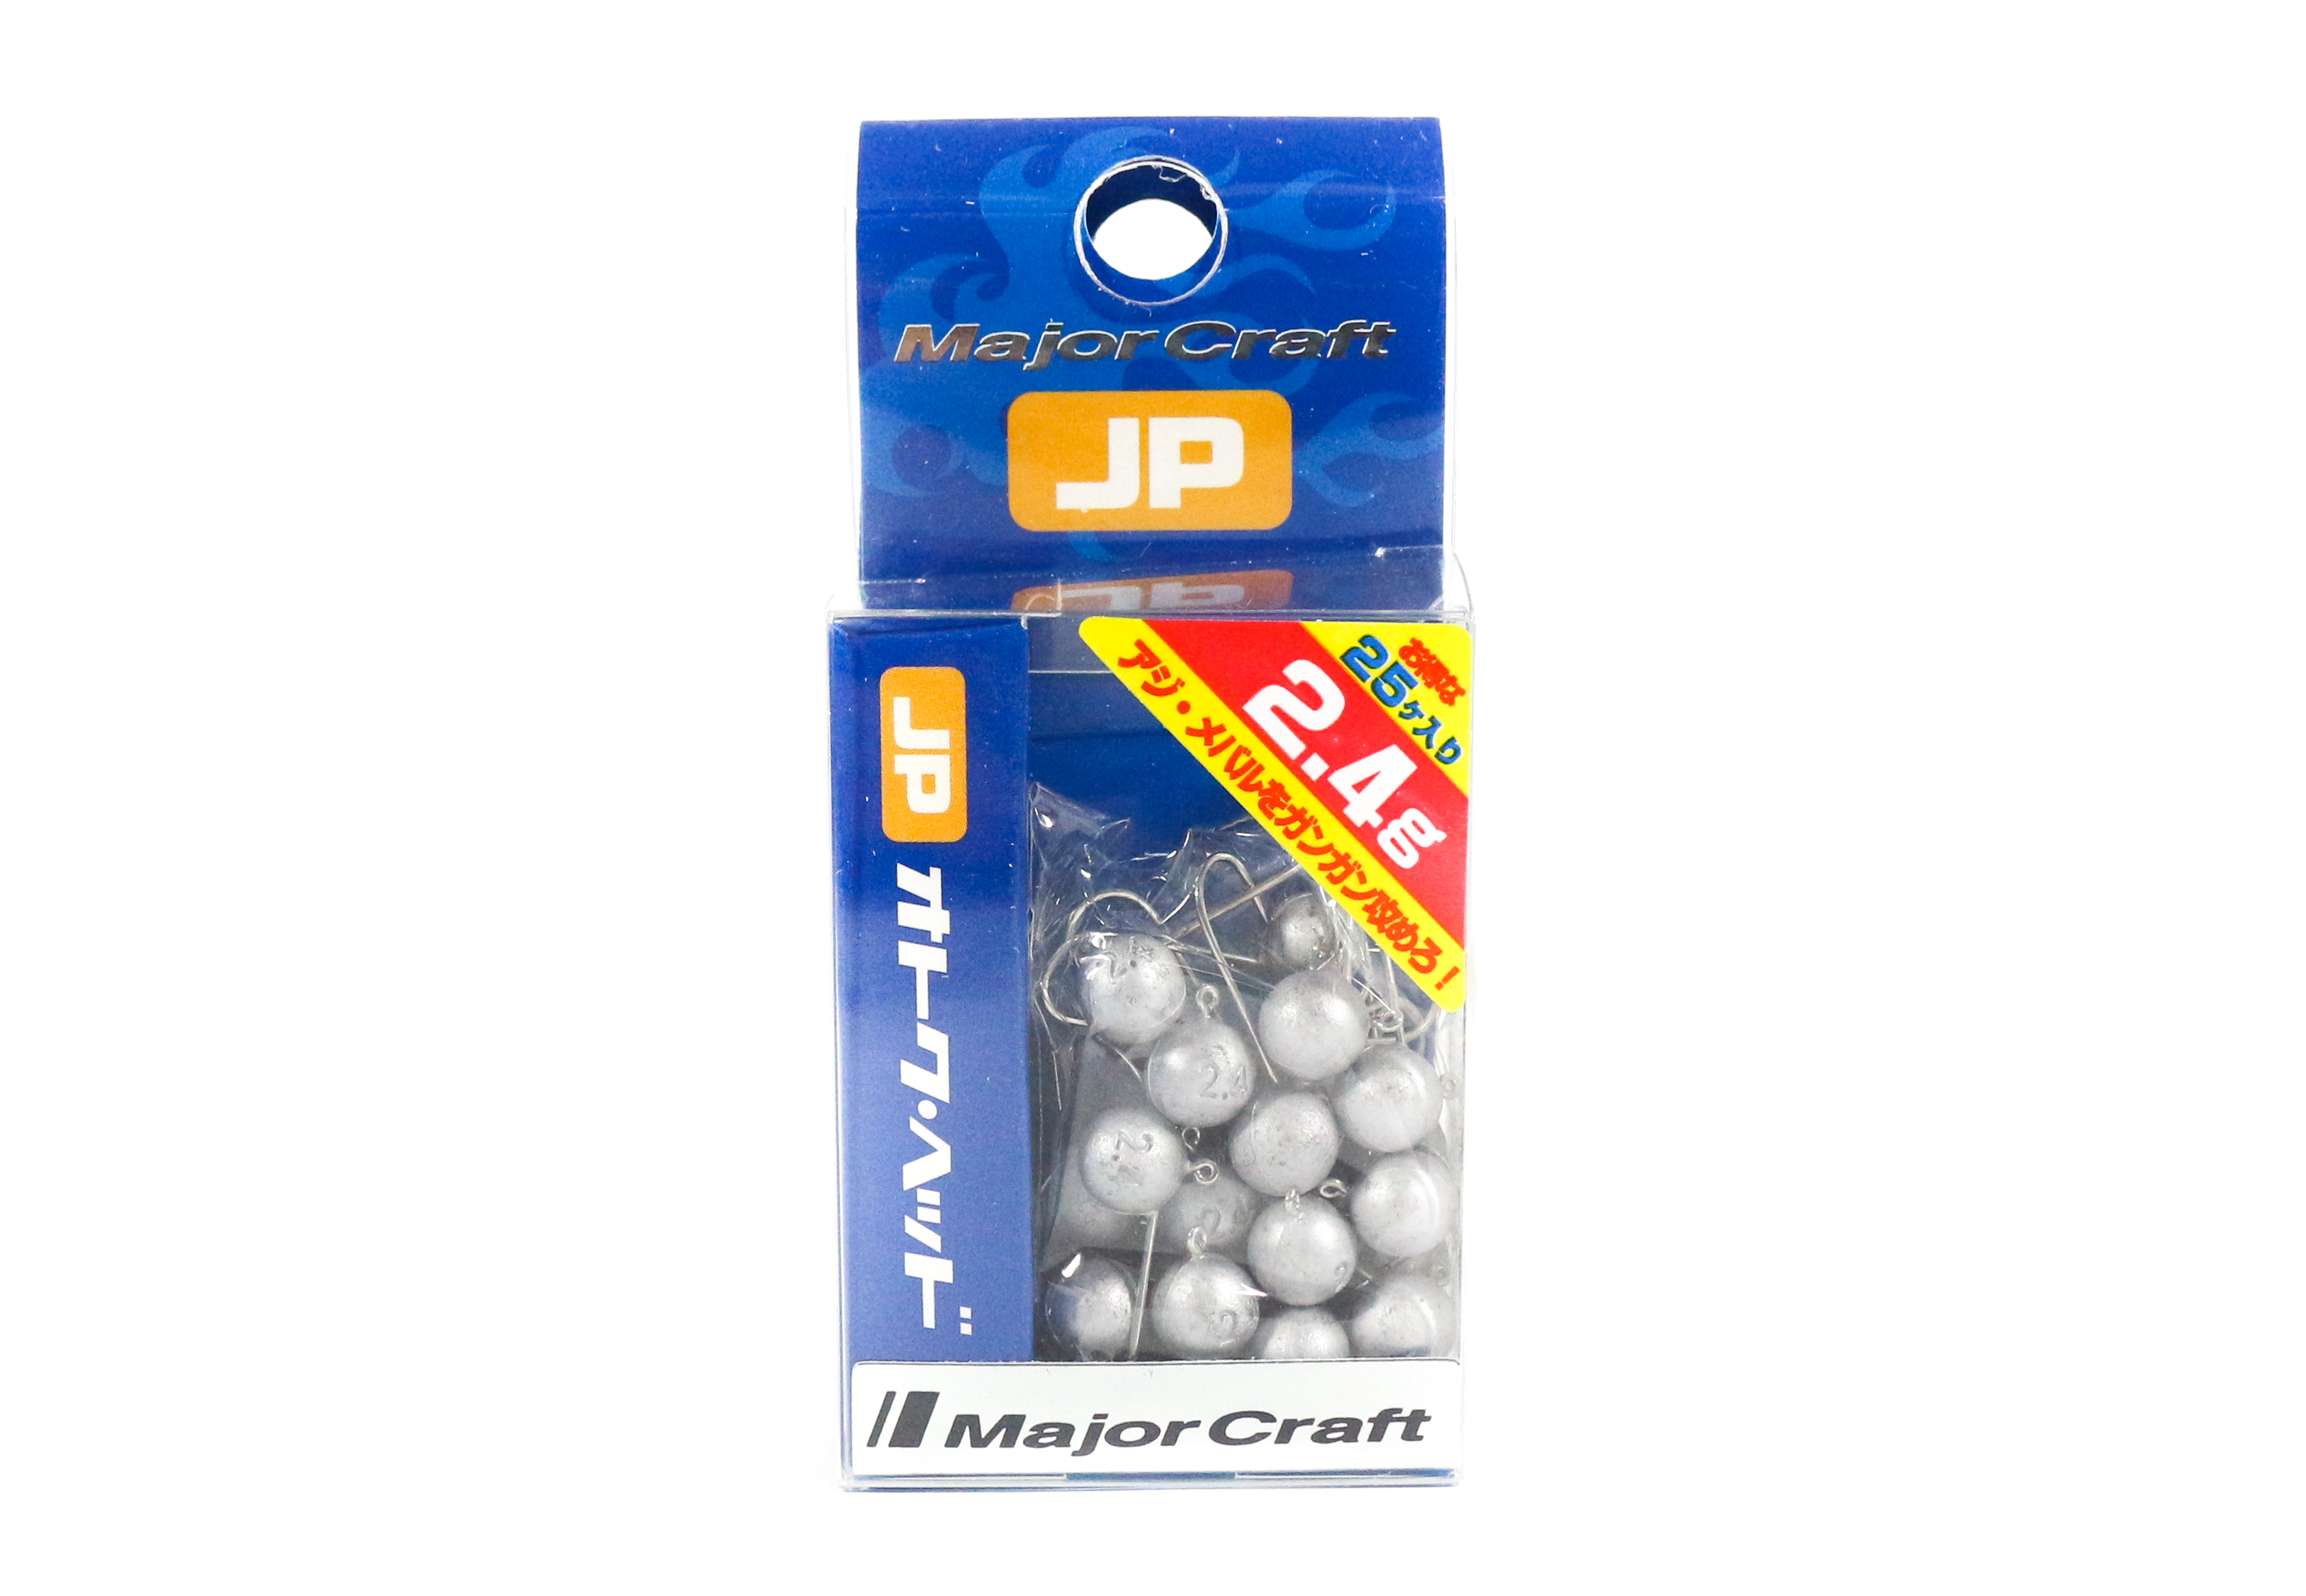 Major Craft Jig Head OTHD-2.4 grams Size 8 25 piece pack (6573)